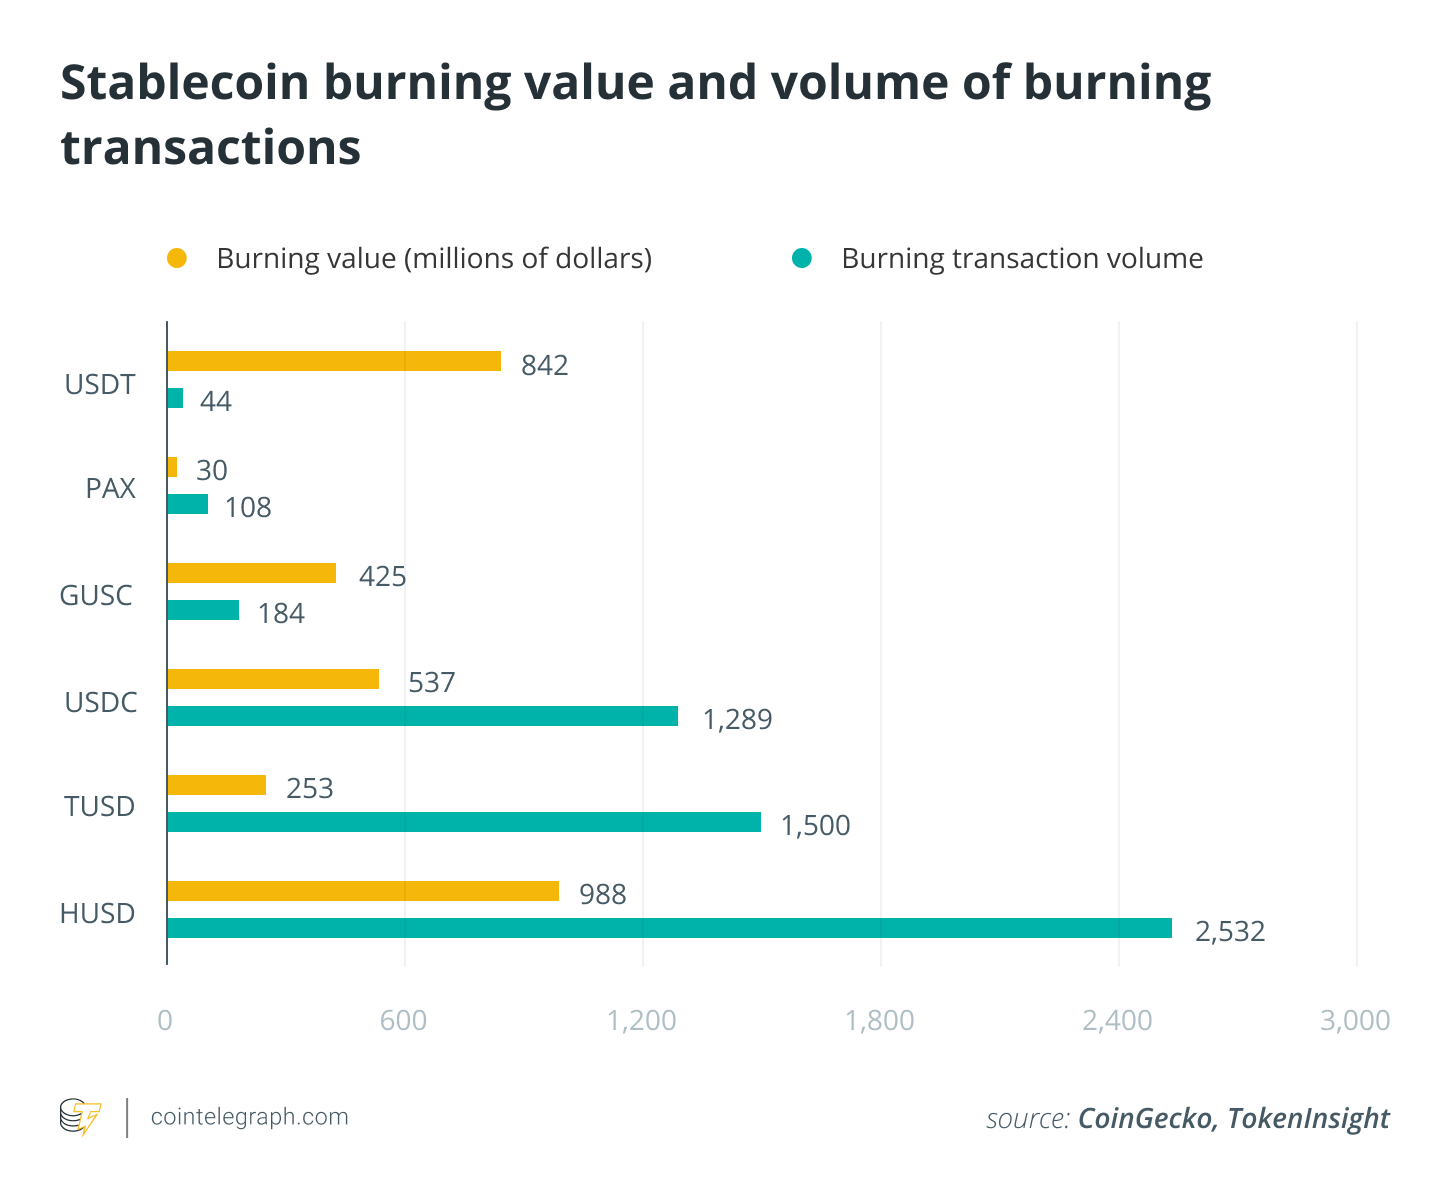 Stablecoin burning value and volume of burning transactions